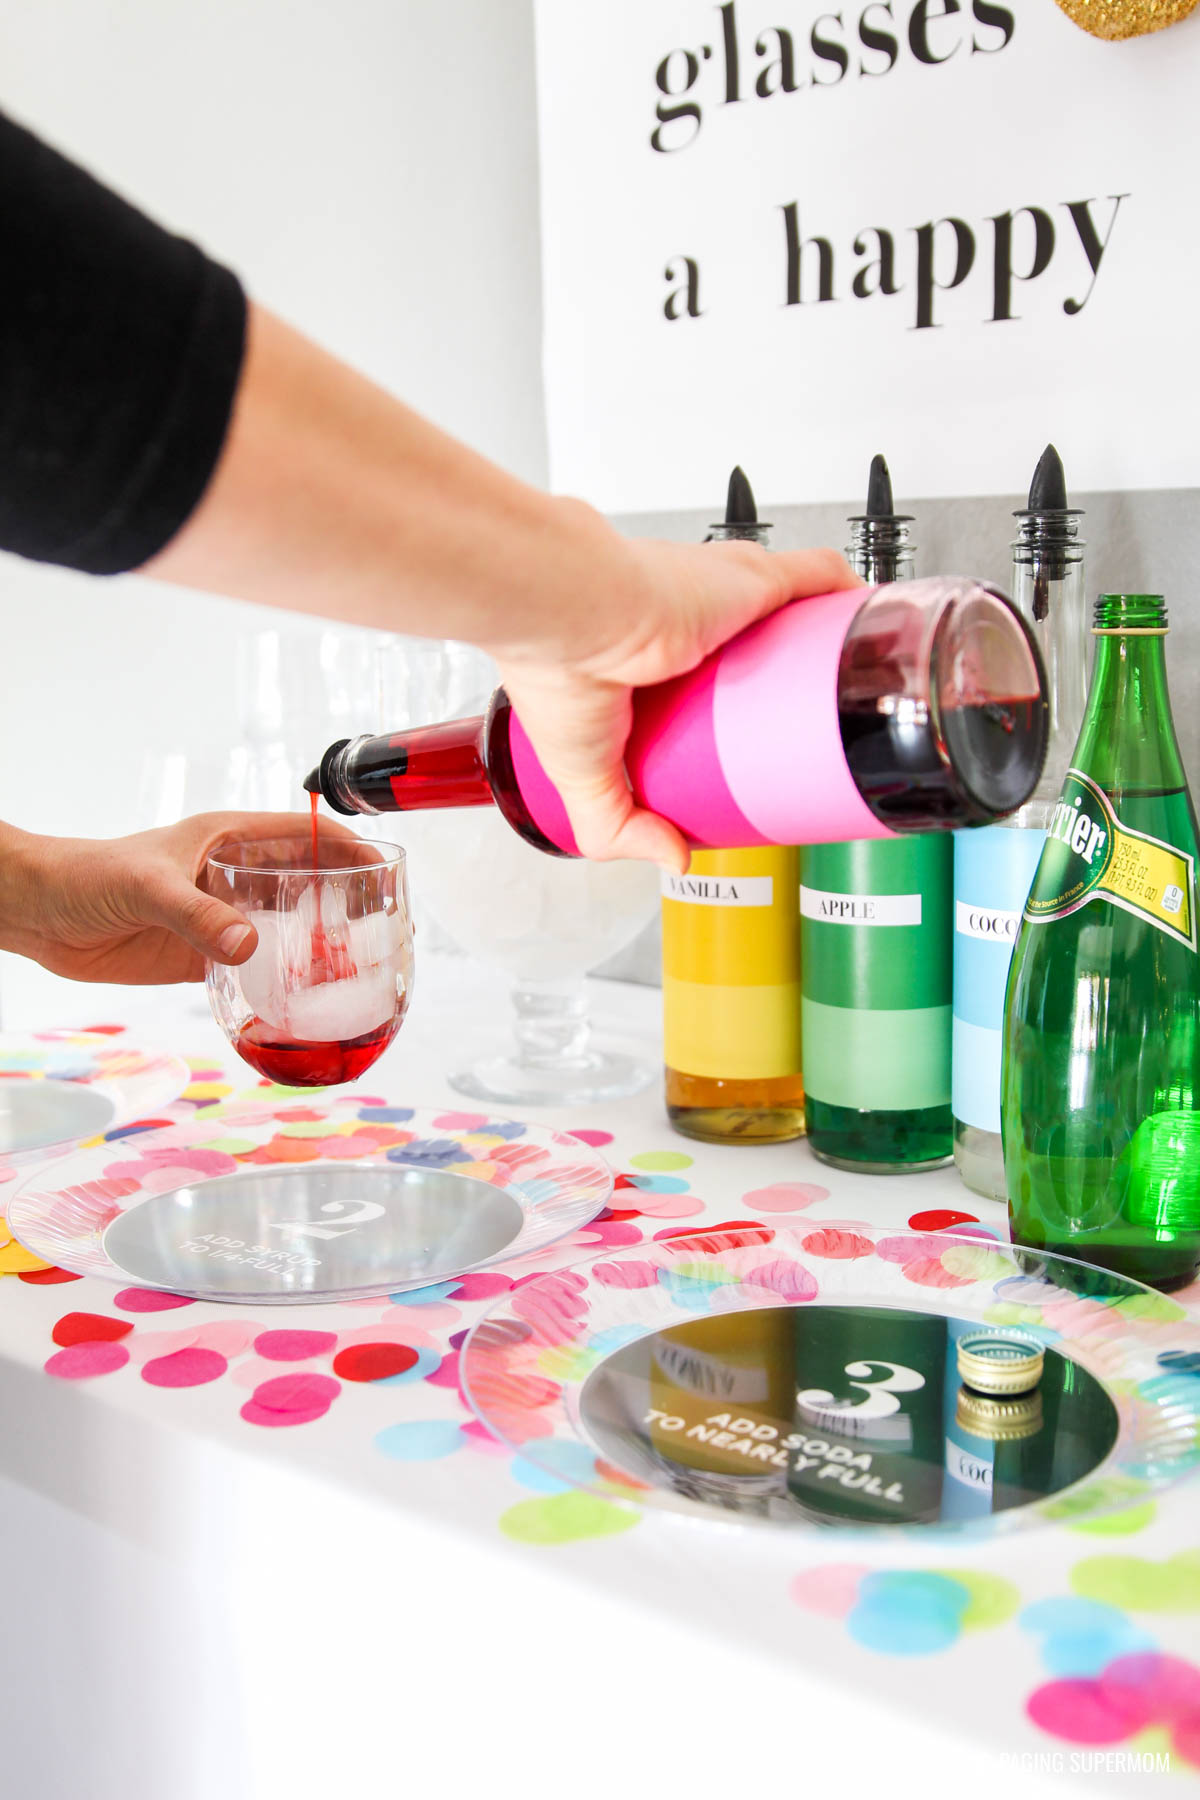 Colorful Italian Soda Bar - free printables for making this Kate-Spade inspired soda bar via @PagingSupermom. Lots of fun kid-friendly New Year's Eve party ideas